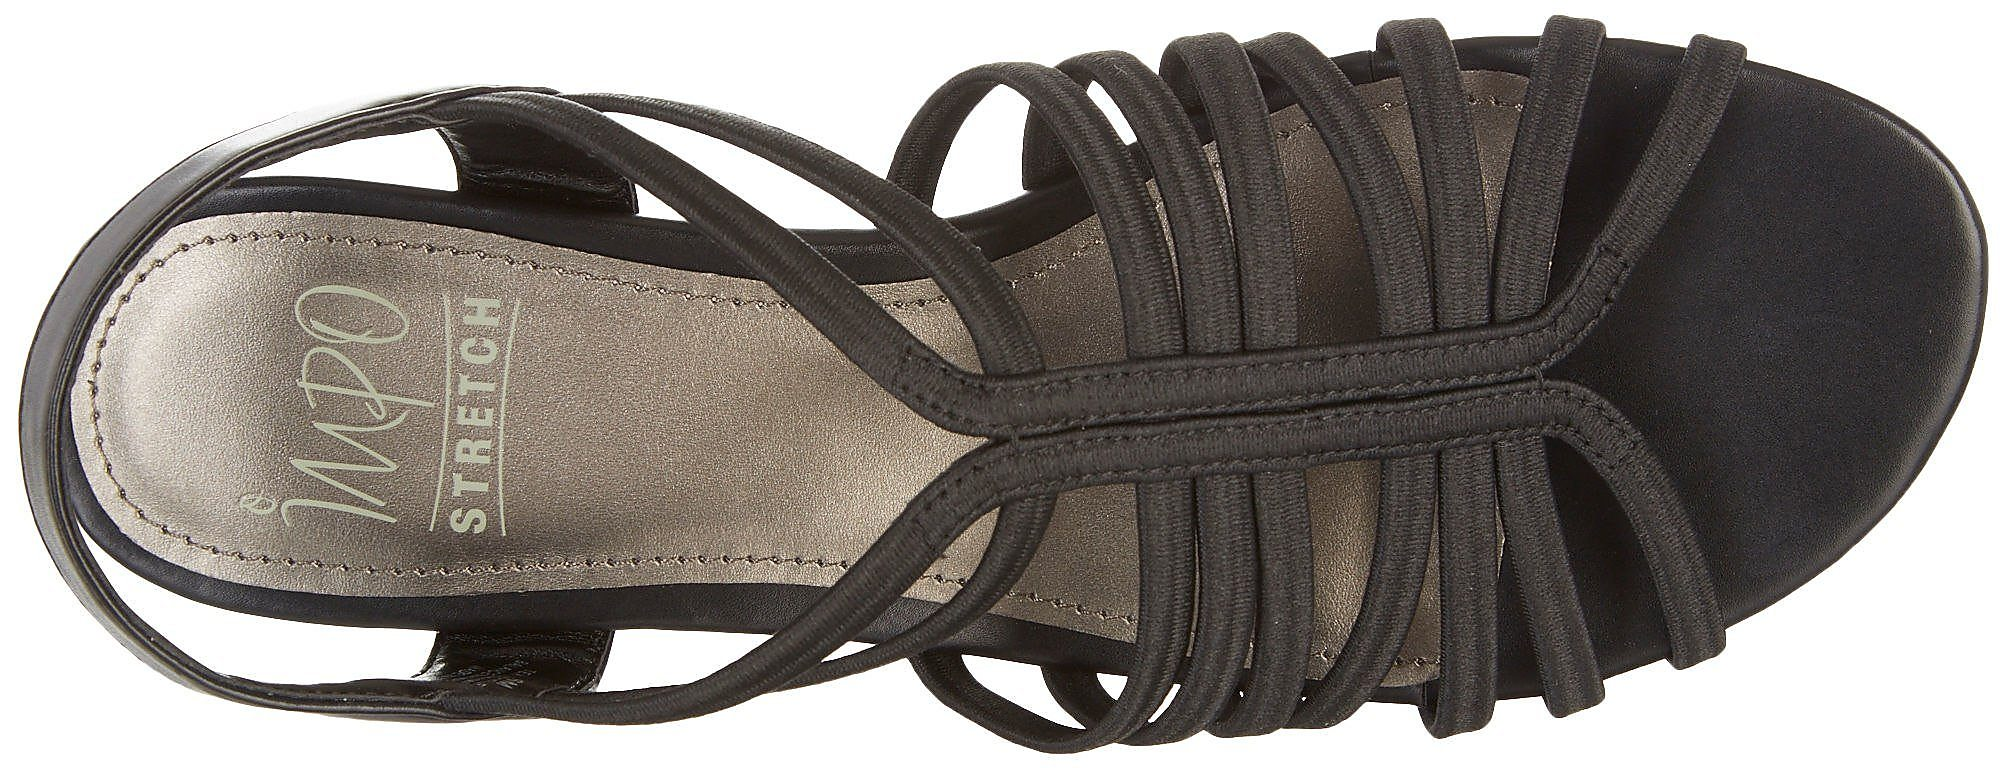 IMPO Womens Raffle Stretch Sandals